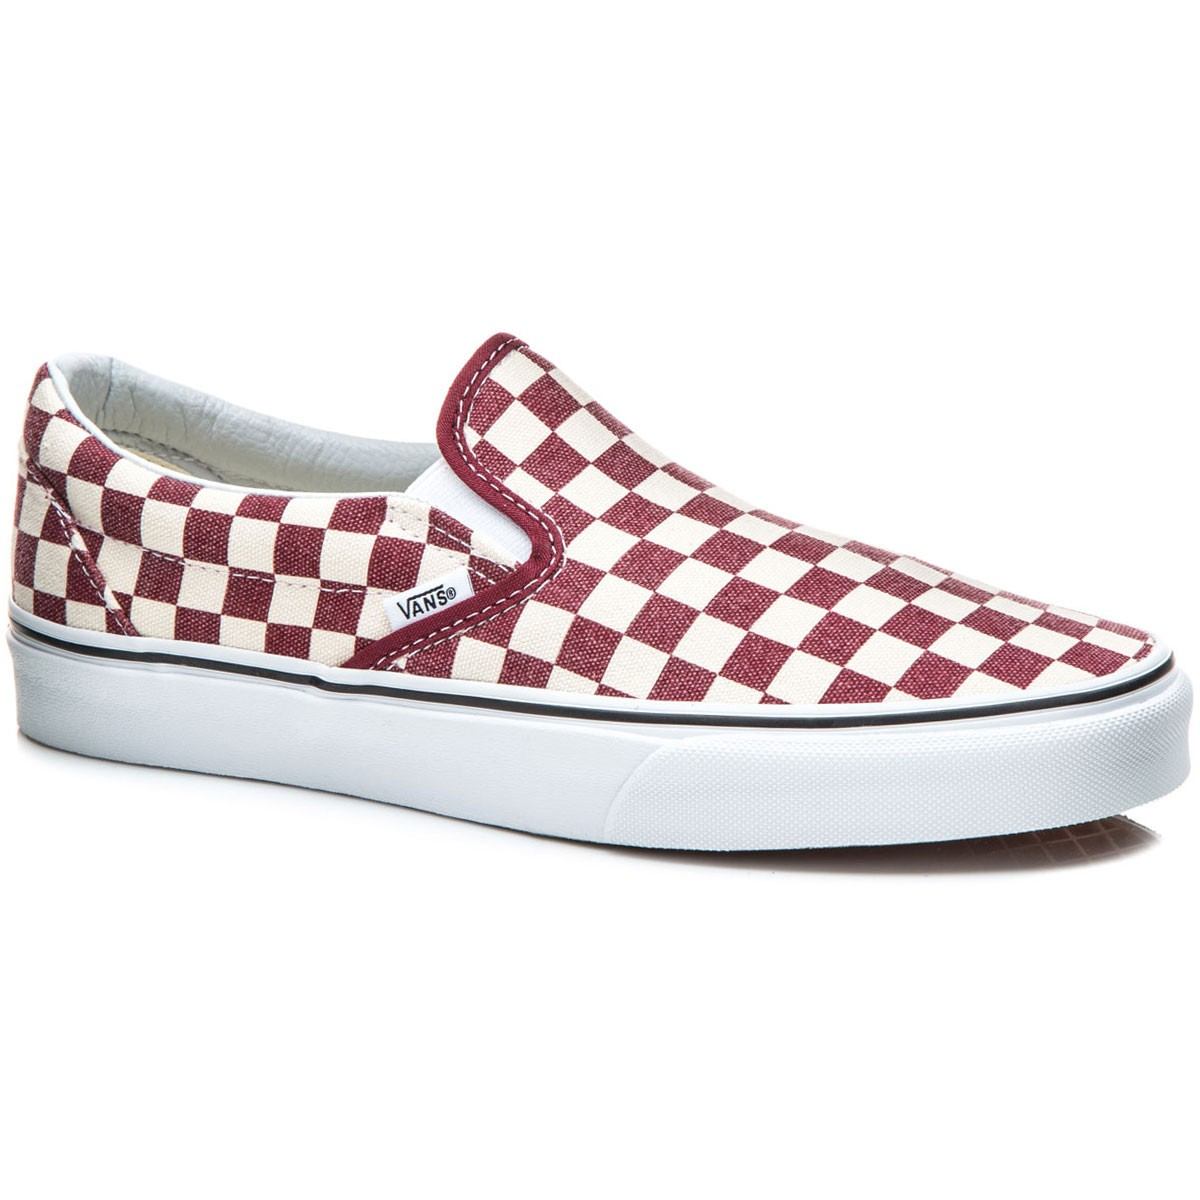 Vans Classic Slip-On Shoes - Checkerboard/Rhubarb/White - 8.0